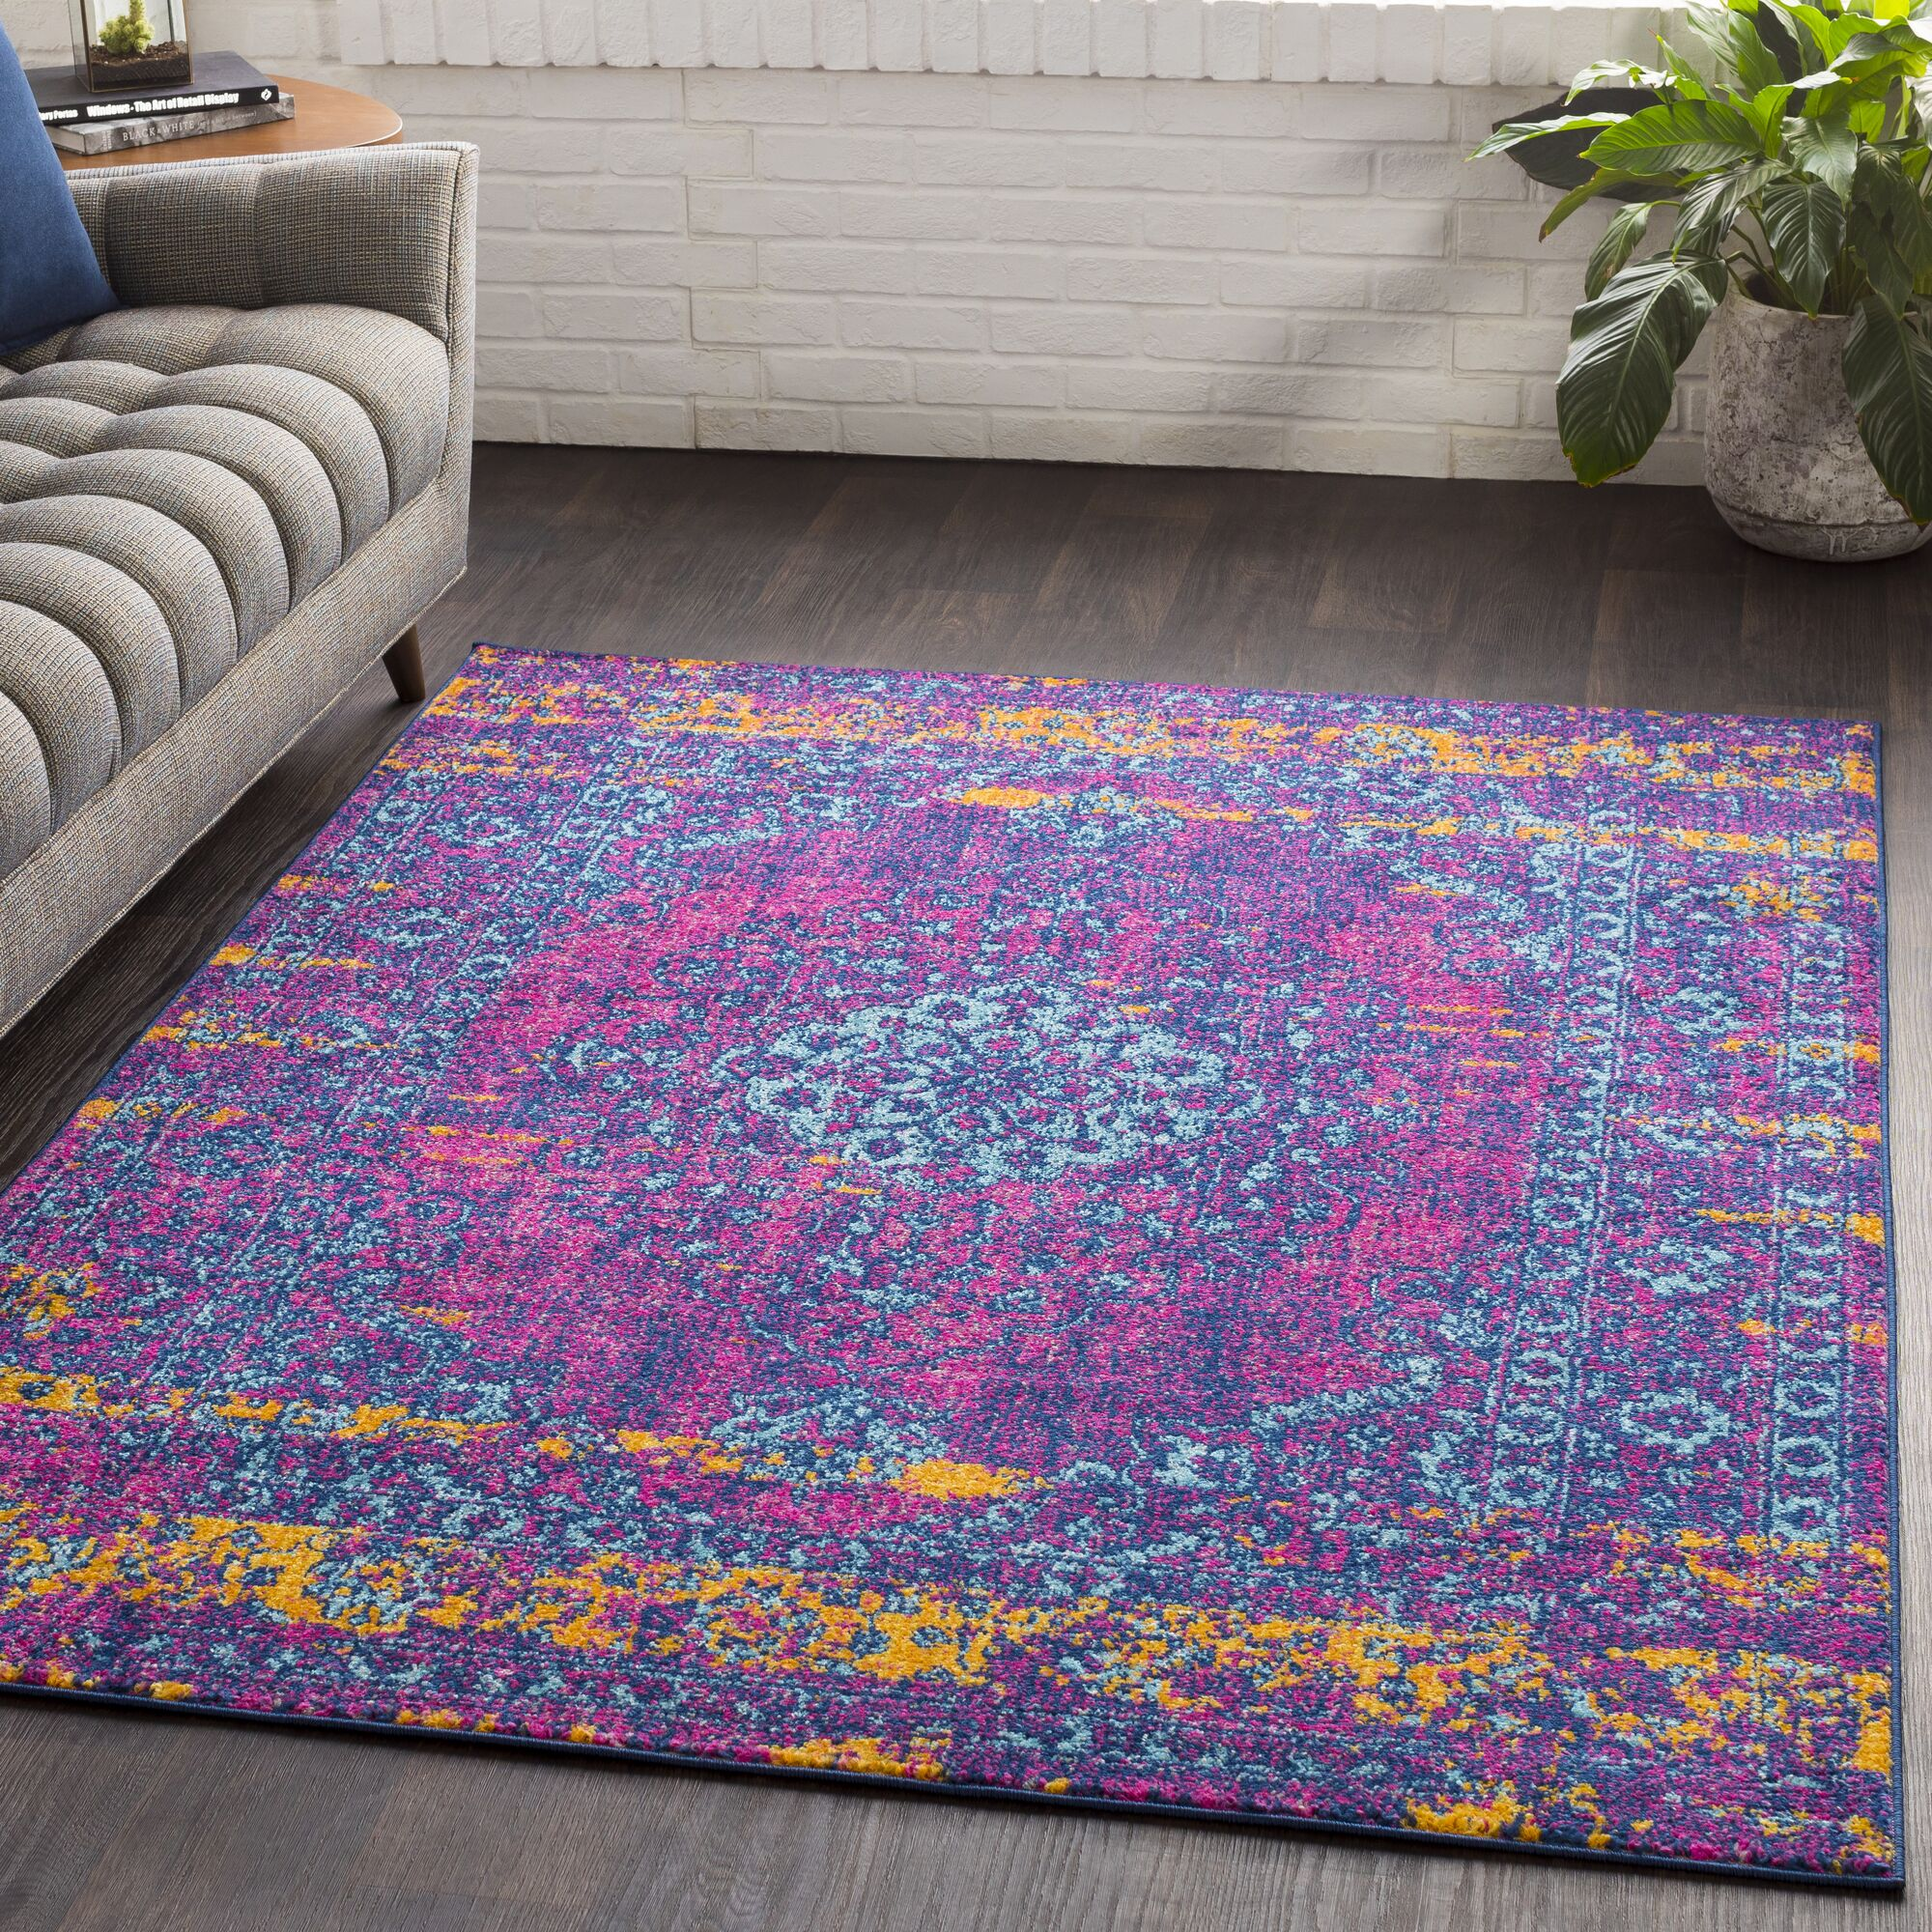 Almonte Distressed Pink/Teal Area Rug Rug Size: Rectangle 5'3